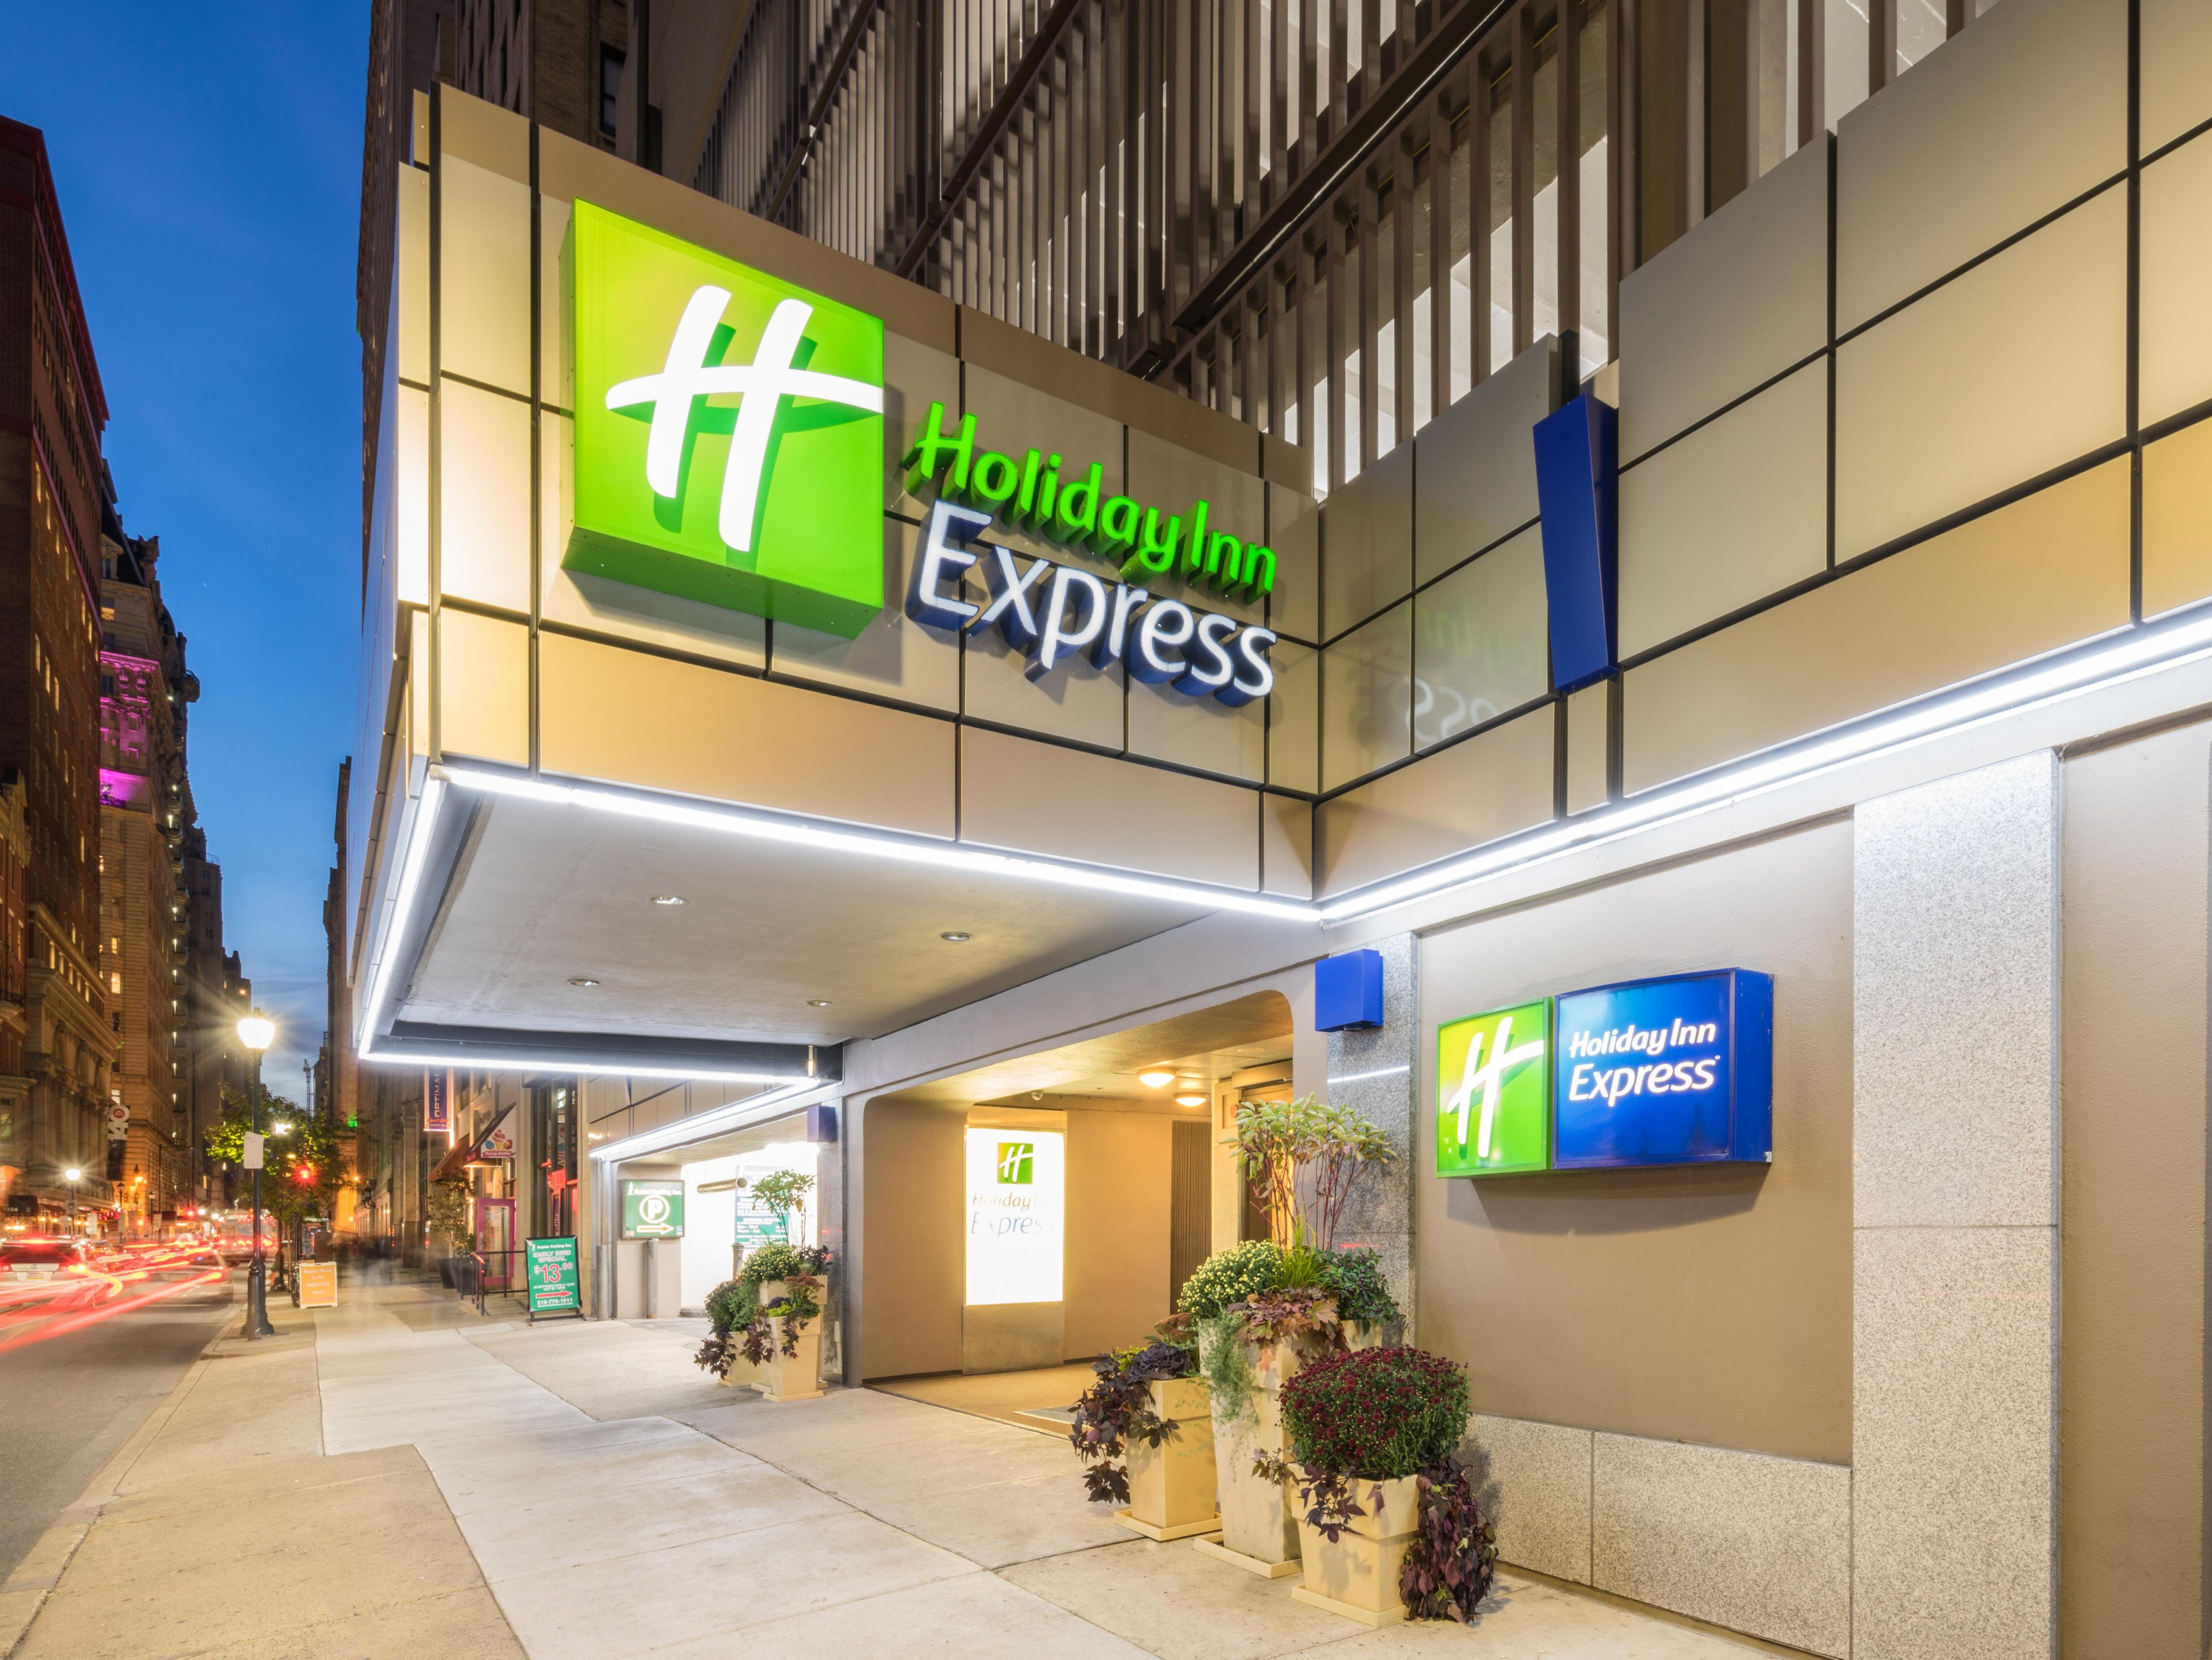 The Holiday Inn Express Midtown